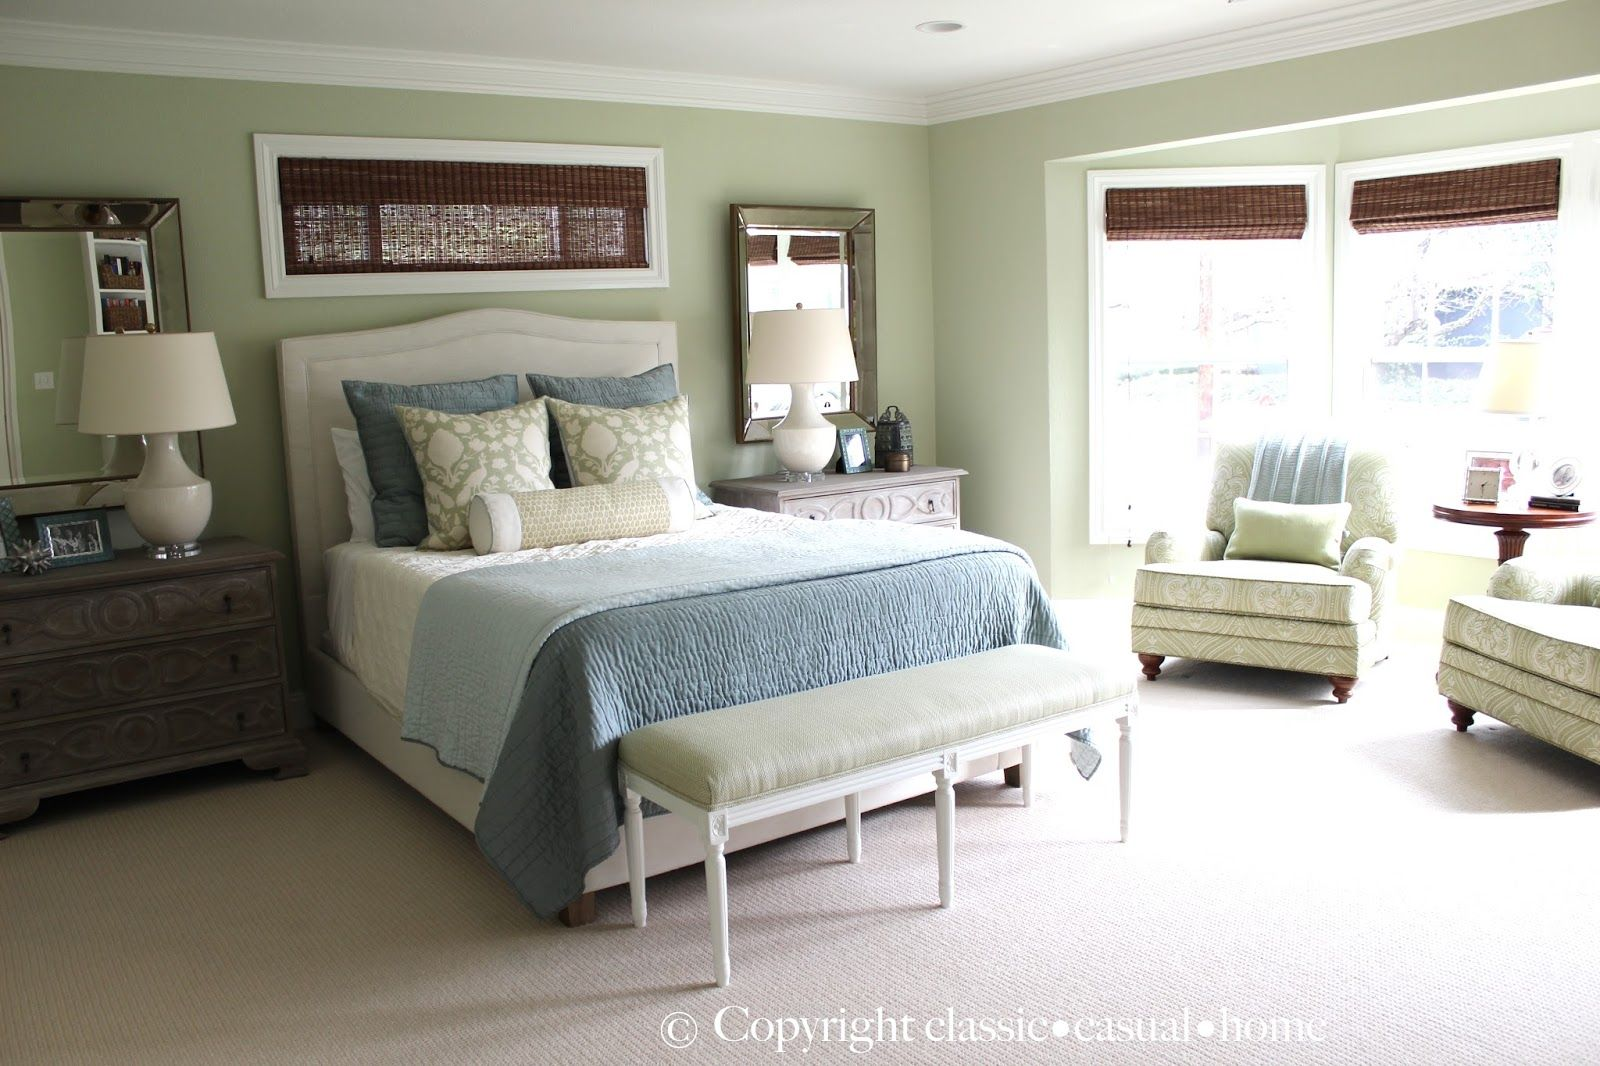 Best Soft Green And Aqua Blue Master Bedroom Before And After 640 x 480